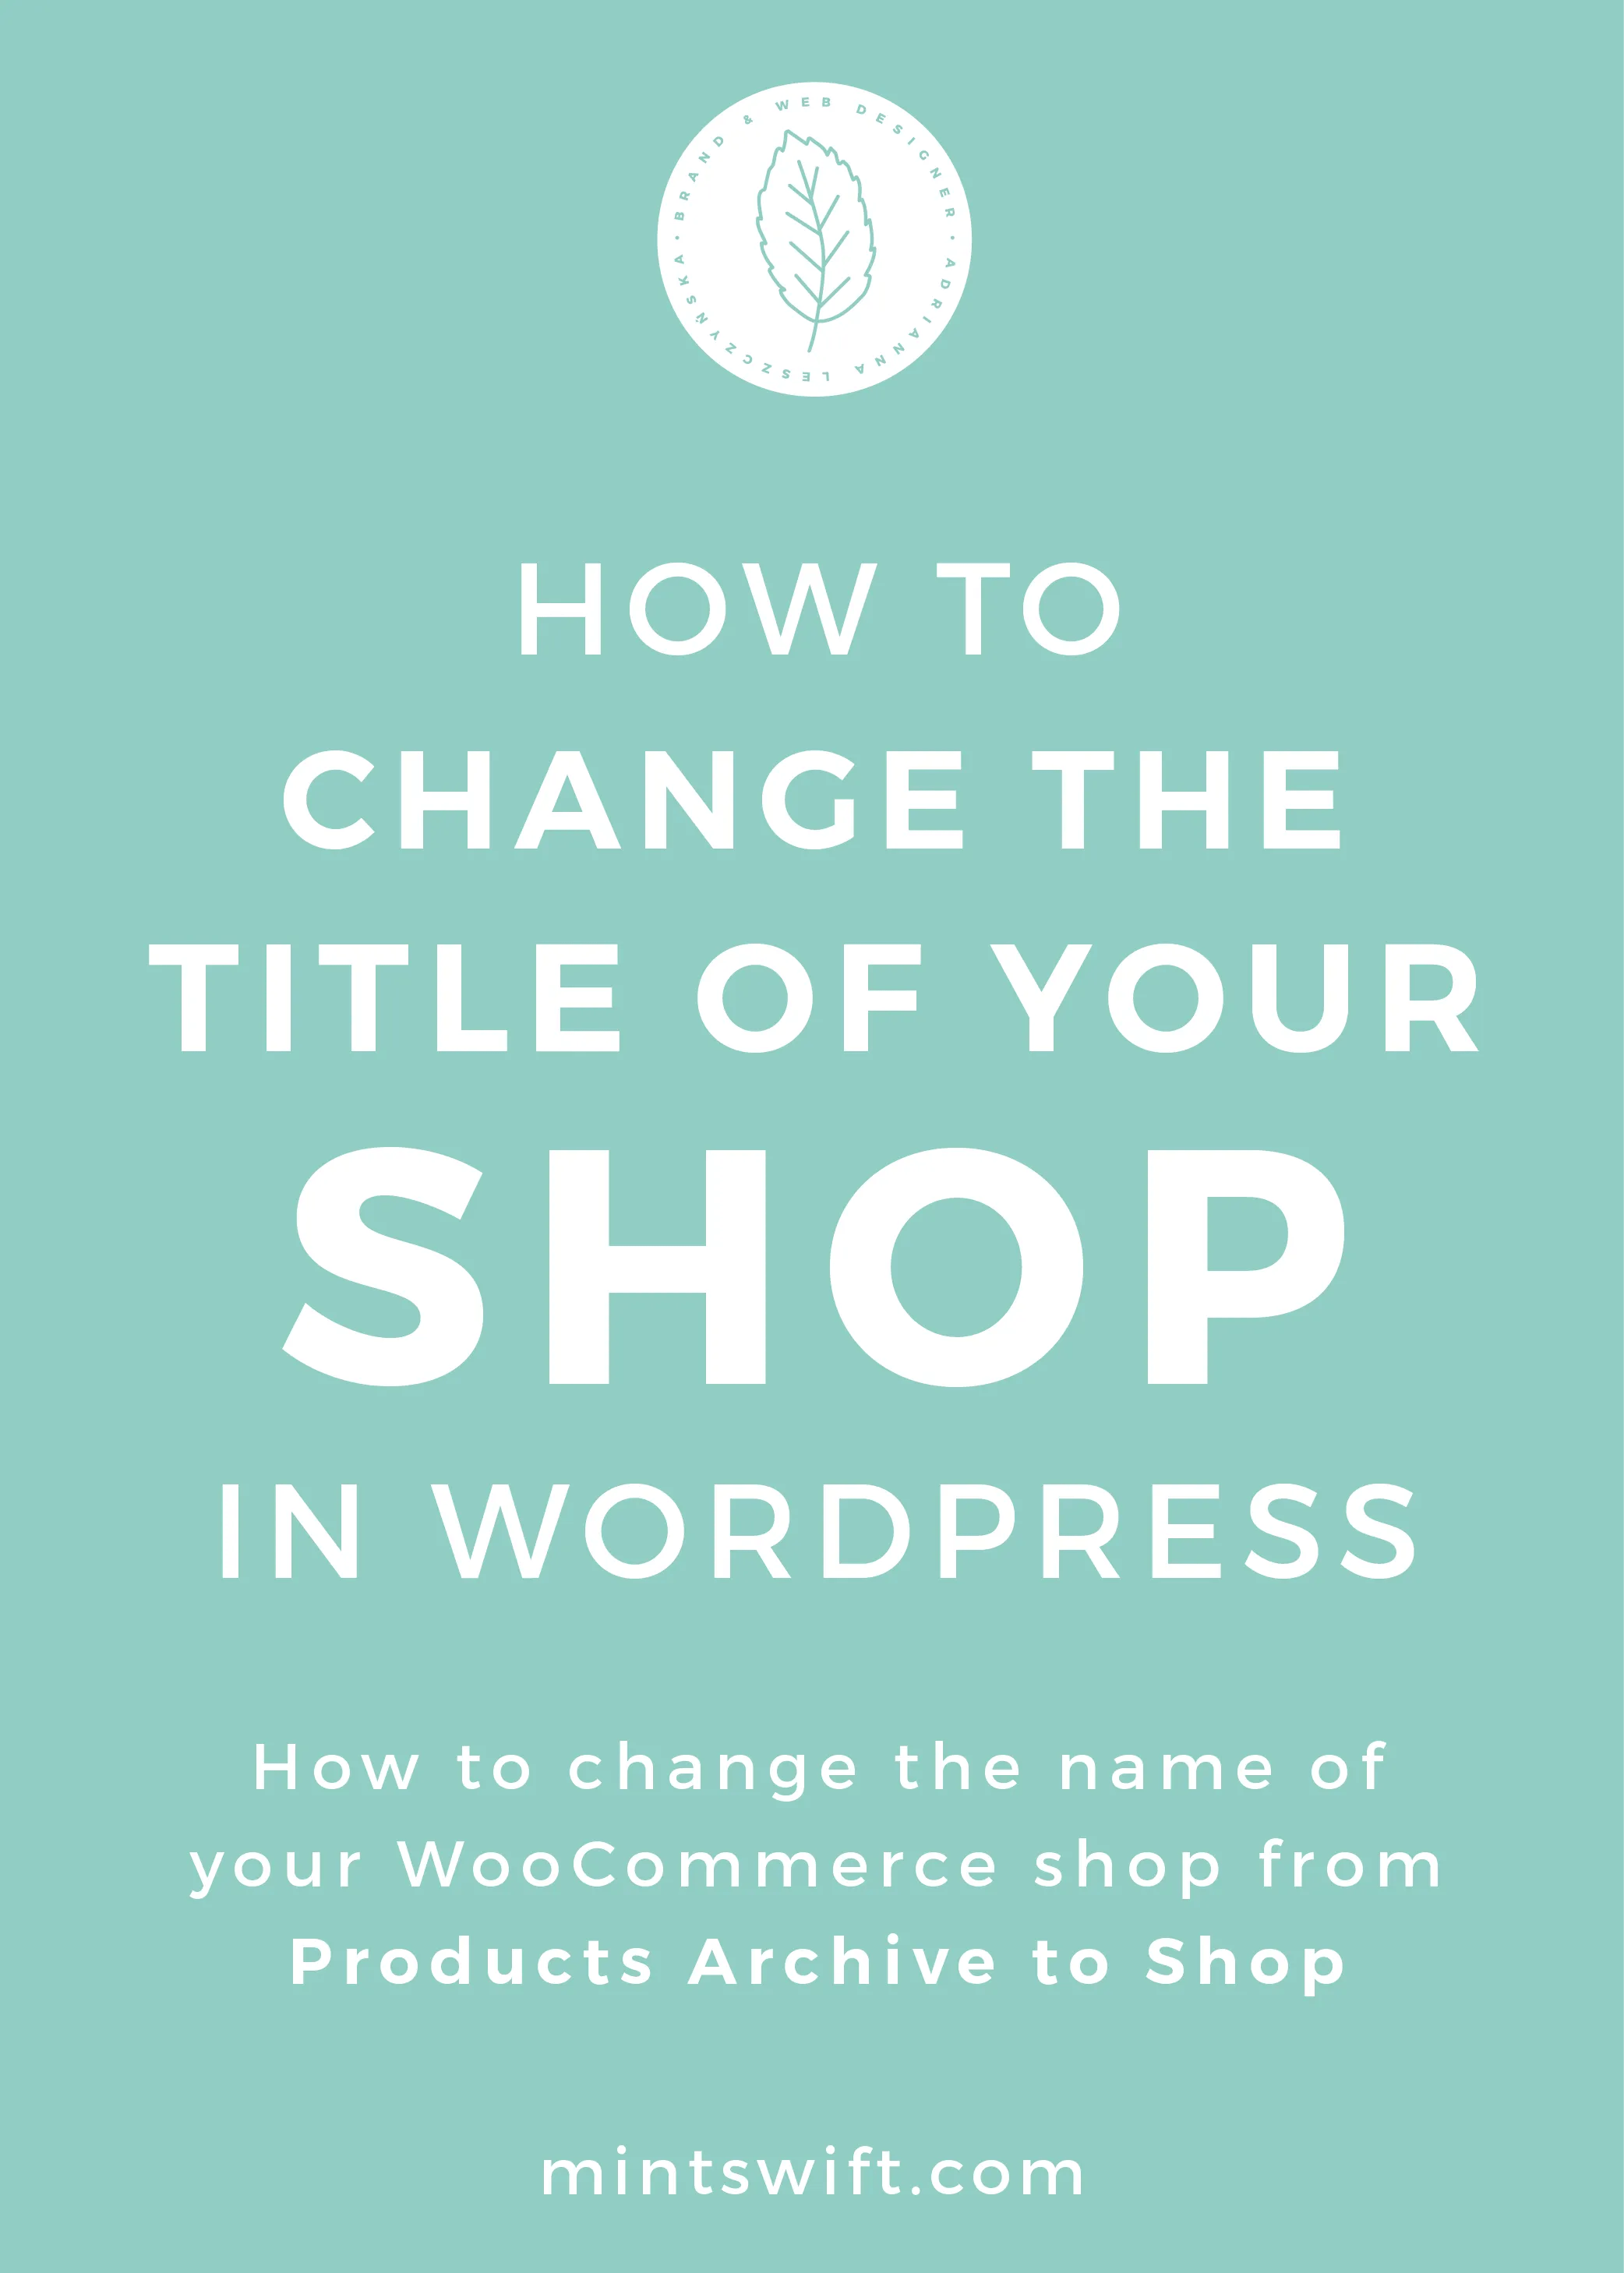 How to Change the Title of Your Shop in WordPress. How to Change the Name of Your WooCommerce Shop from Products Archive to Shop - MintSwift